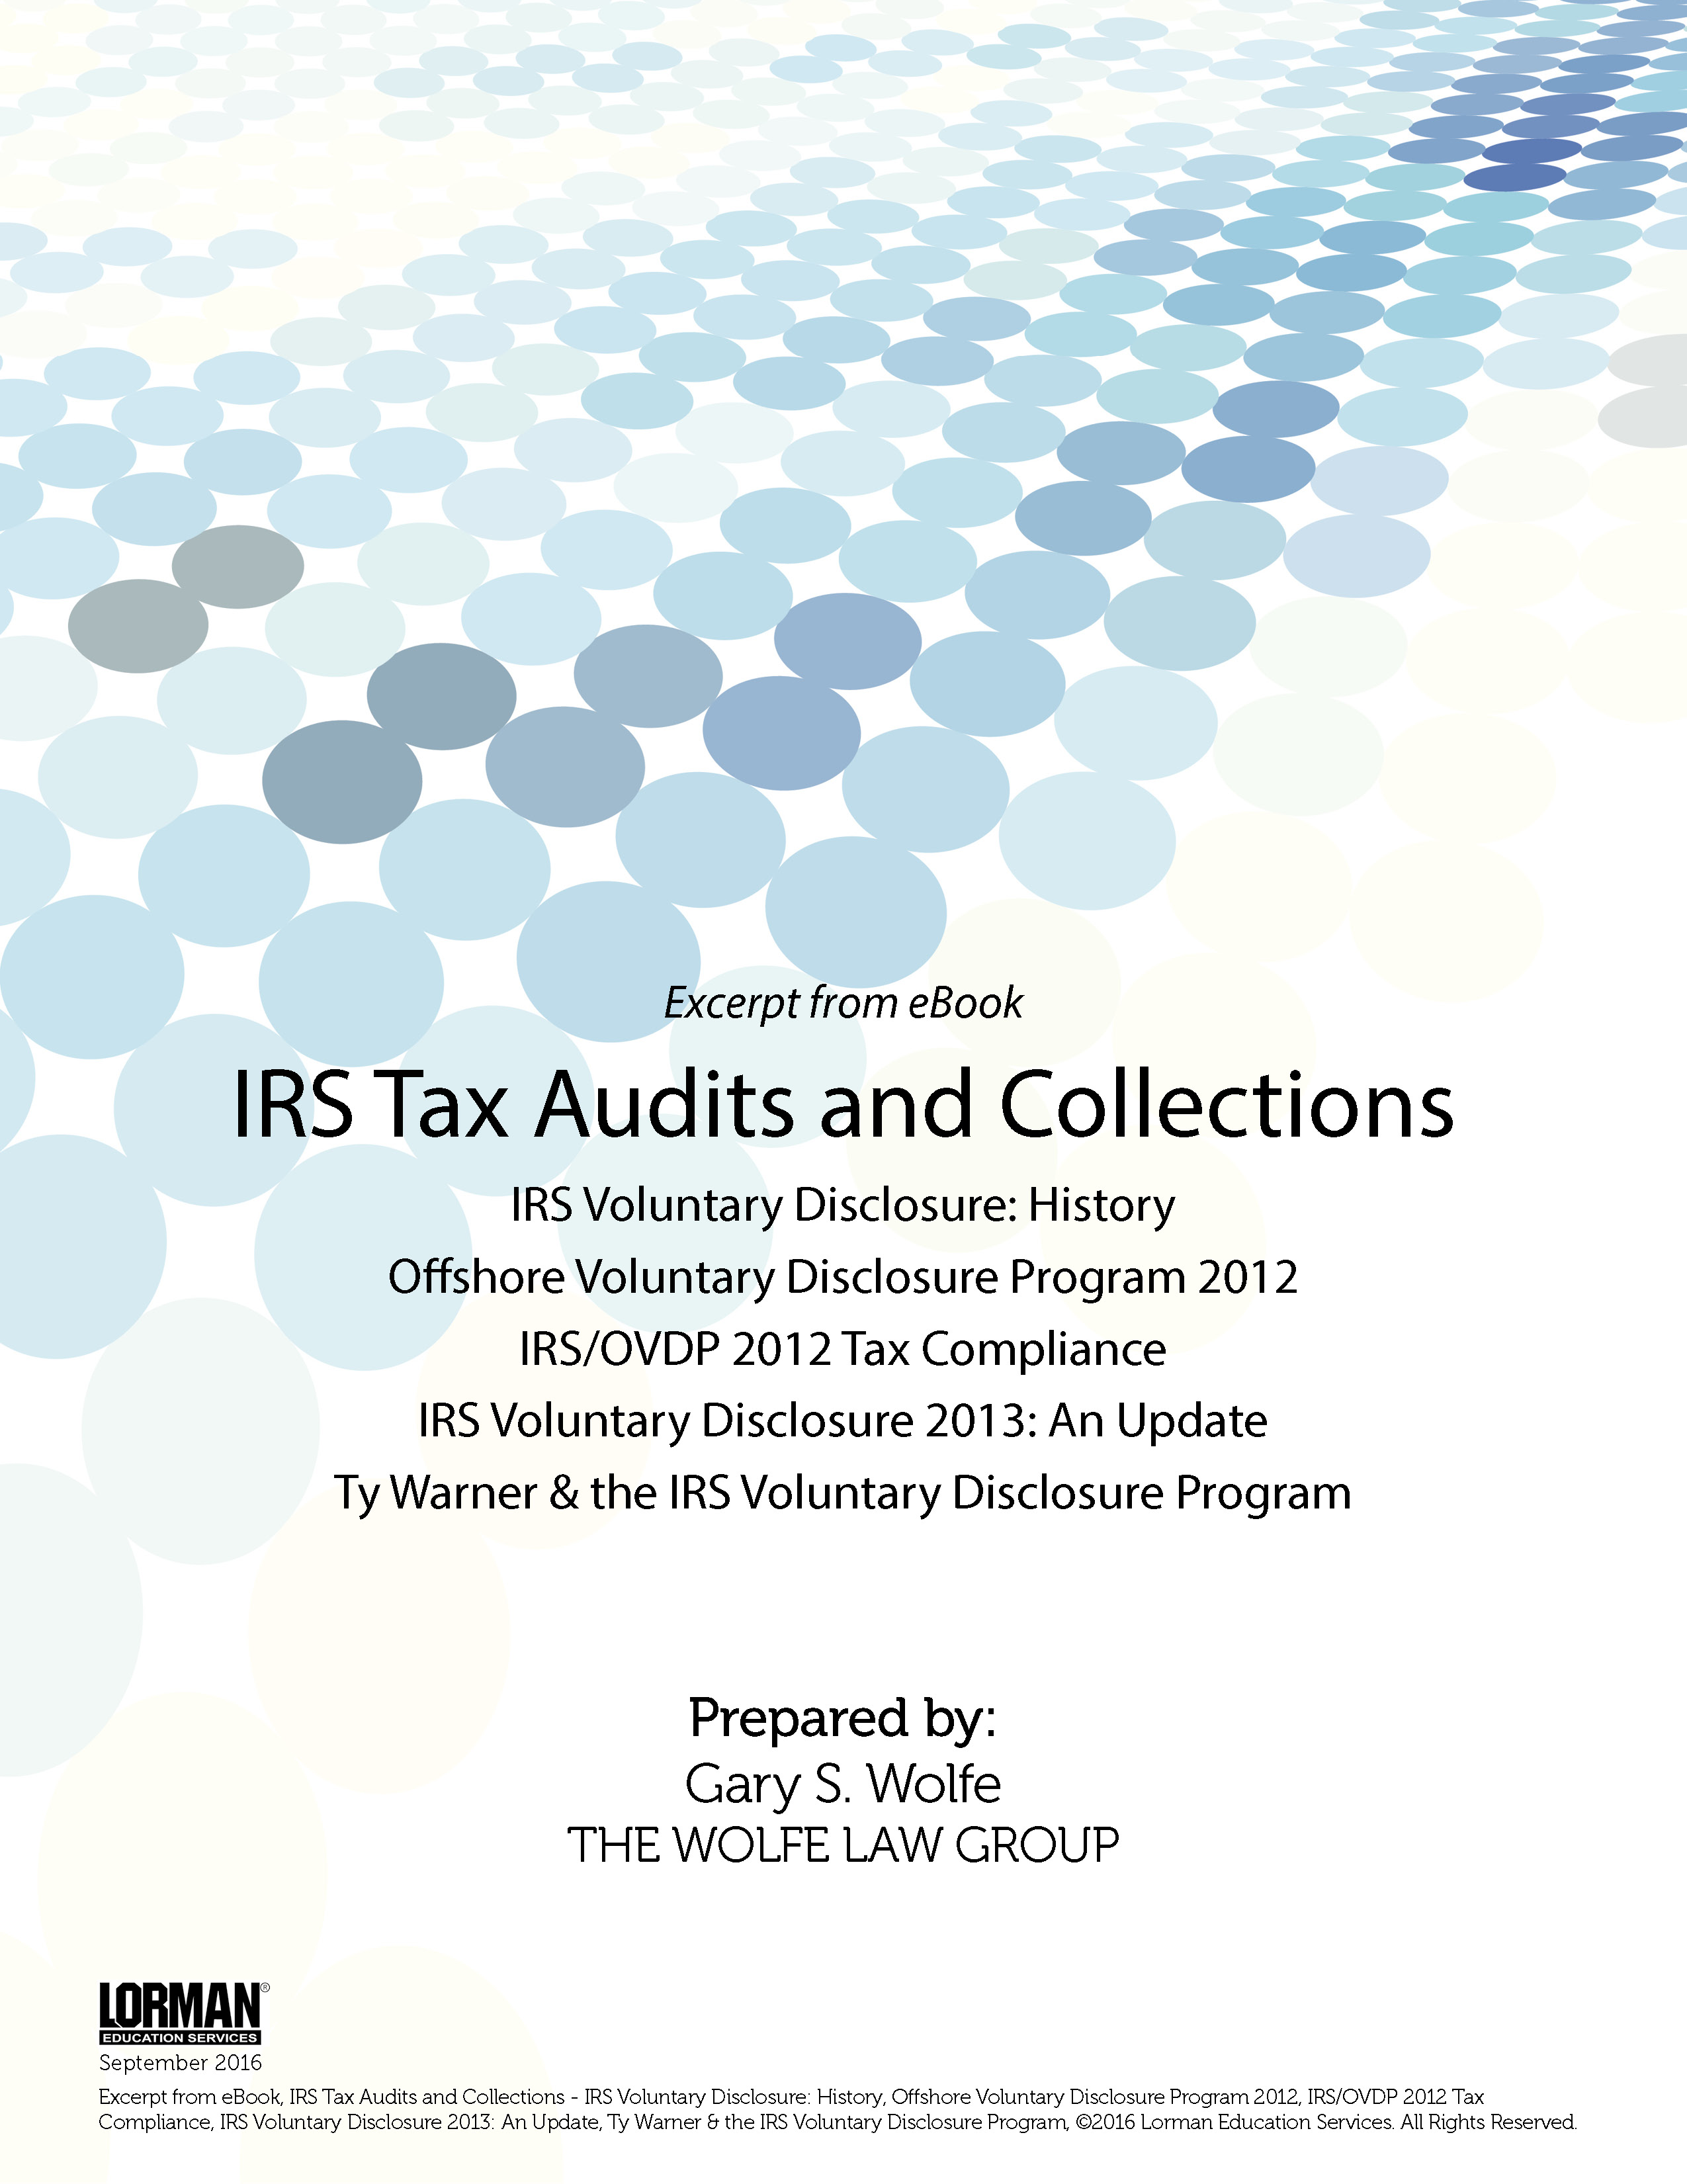 IRS Tax Audits and Collections: IRS Voluntary Disclosure Program 2012 and 2013